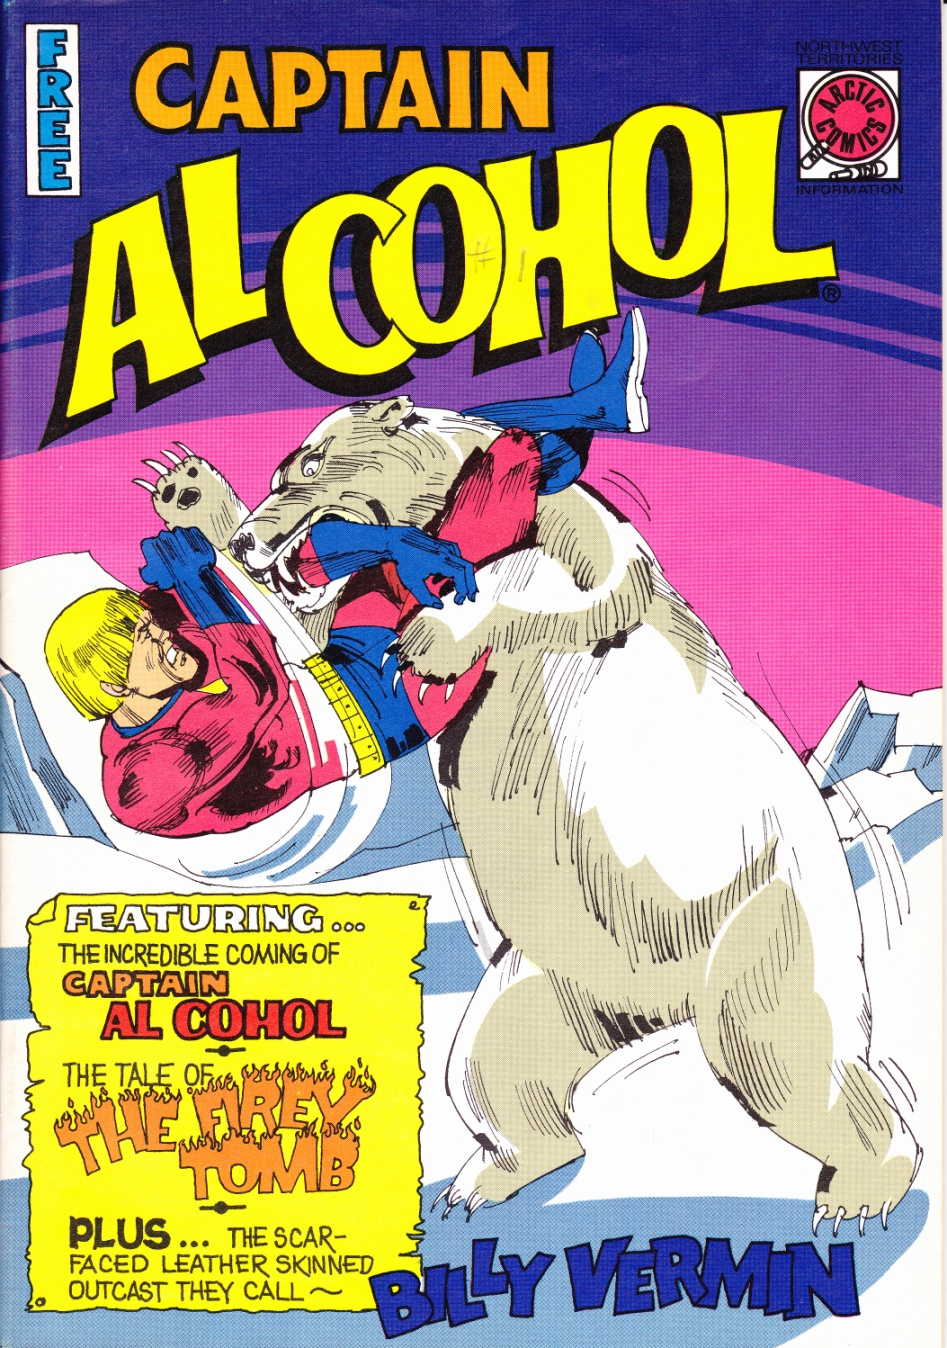 C:\Users\Robert\Documents\CARTOONING ILLUSTRATION ANIMATION\IMAGE COMIC BOOK COVERS\Captain Al Cohol, 1 .jpg